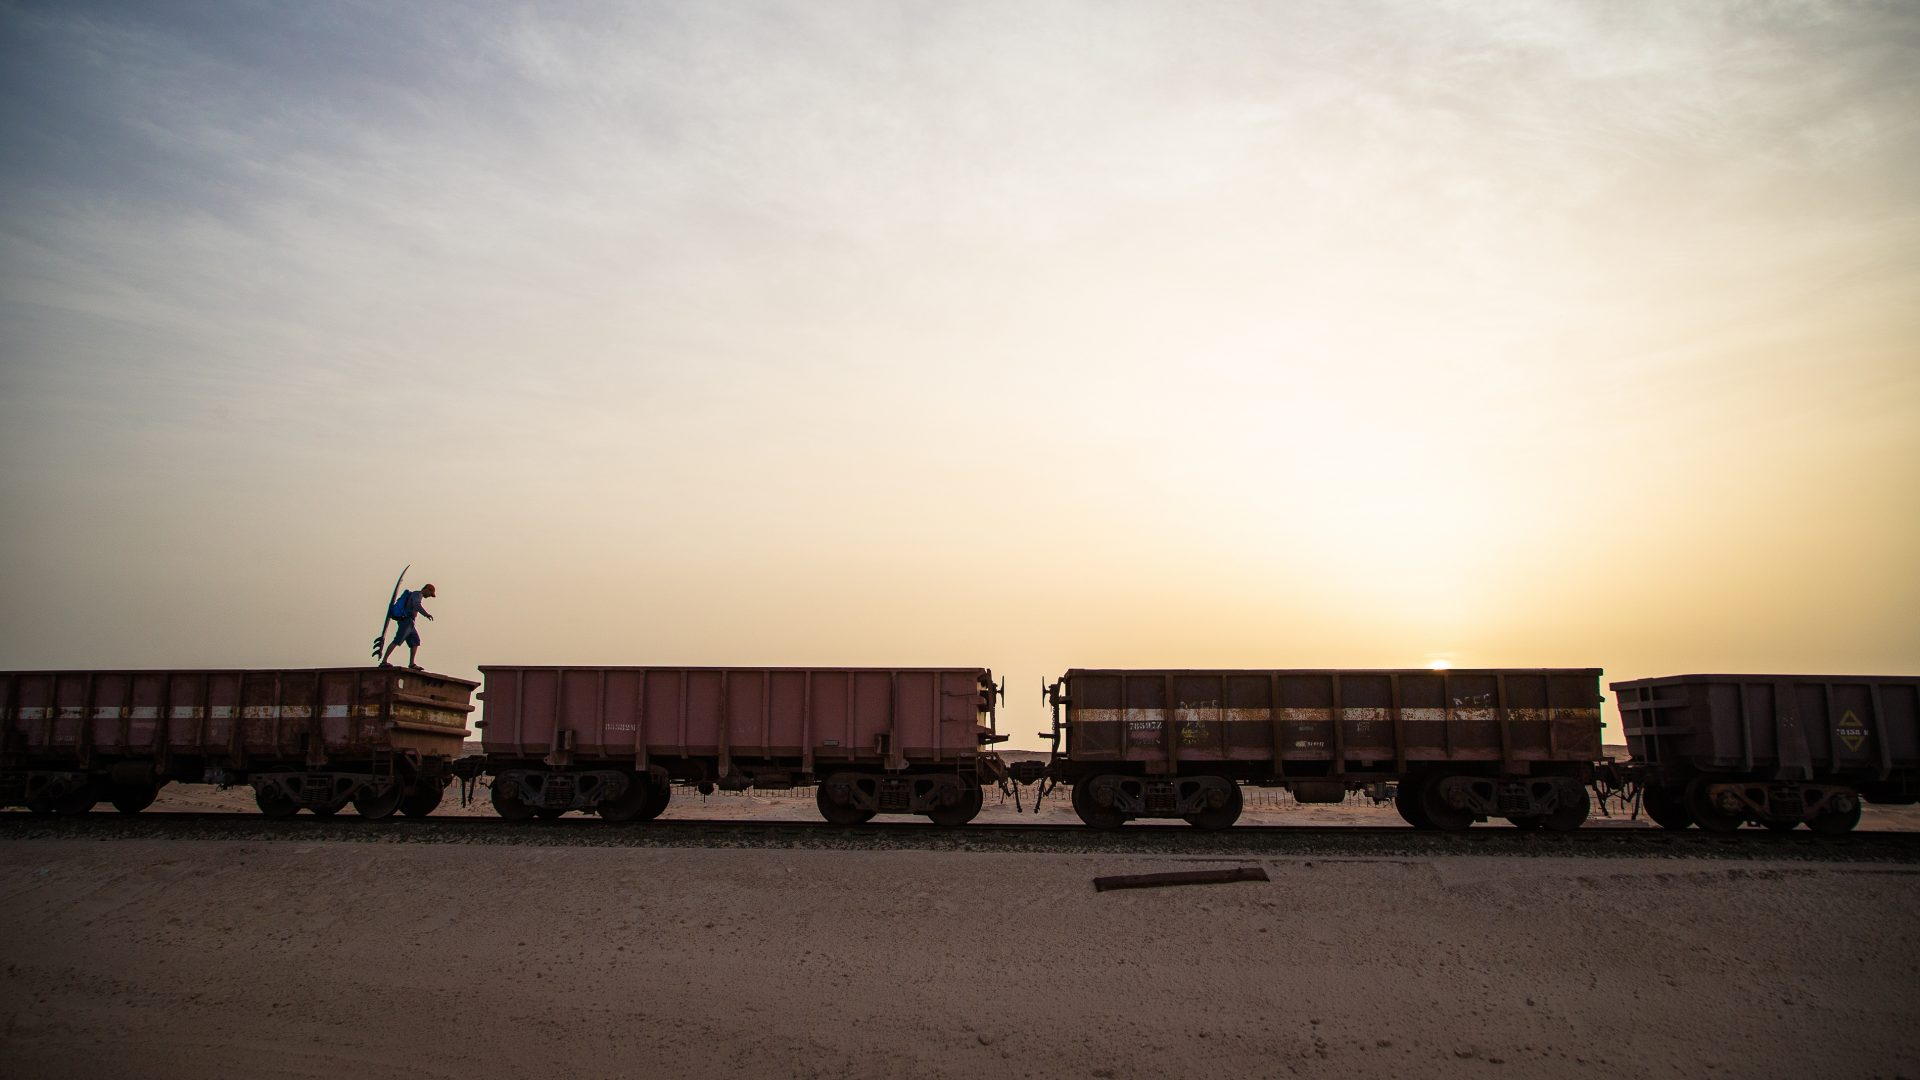 This photographer hops freight trains through the Sahara